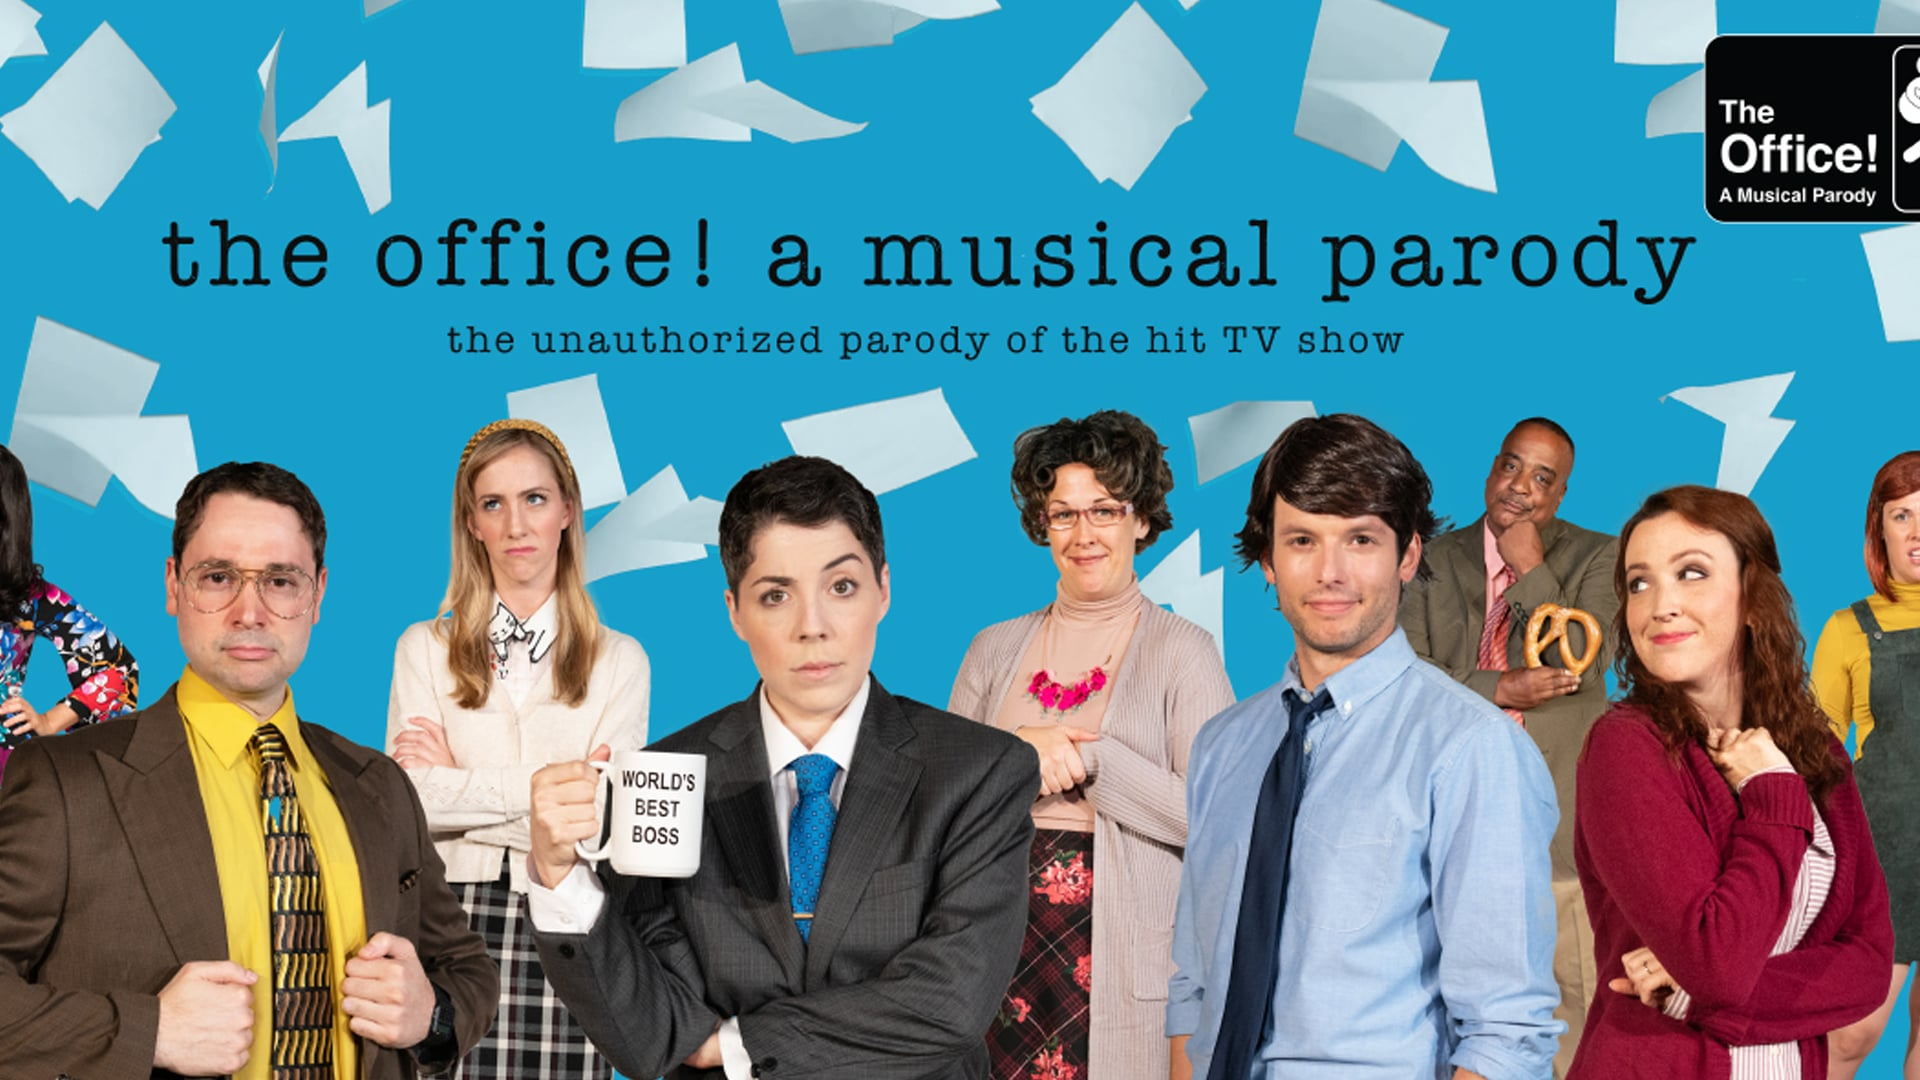 The Office! A Musical Parody Live at the Scranton Cultural Center - Masonic Temple